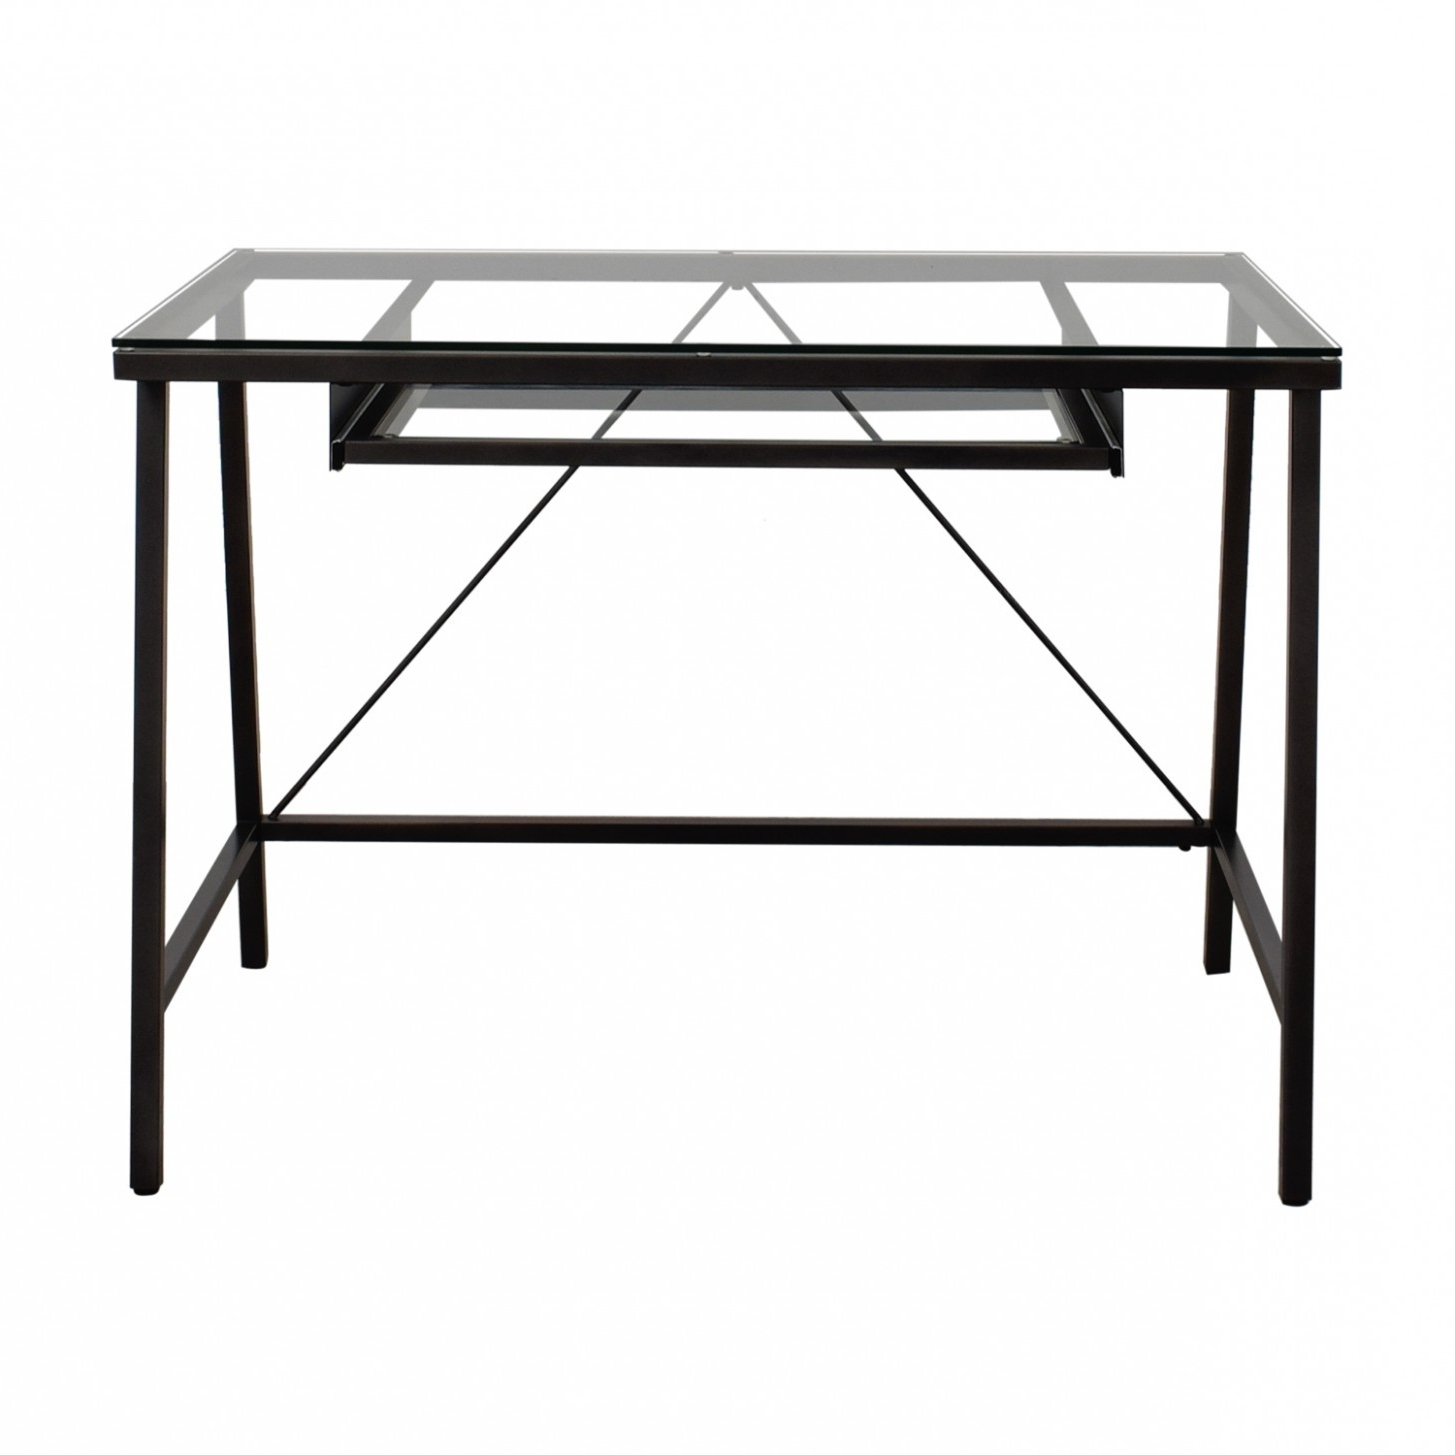 Cb2 Rolling Cart Desk Luxury 3 Ways To Style And Use Ikea S Kallax With Regard To Favorite Go Cart White Rolling Coffee Tables (View 8 of 20)